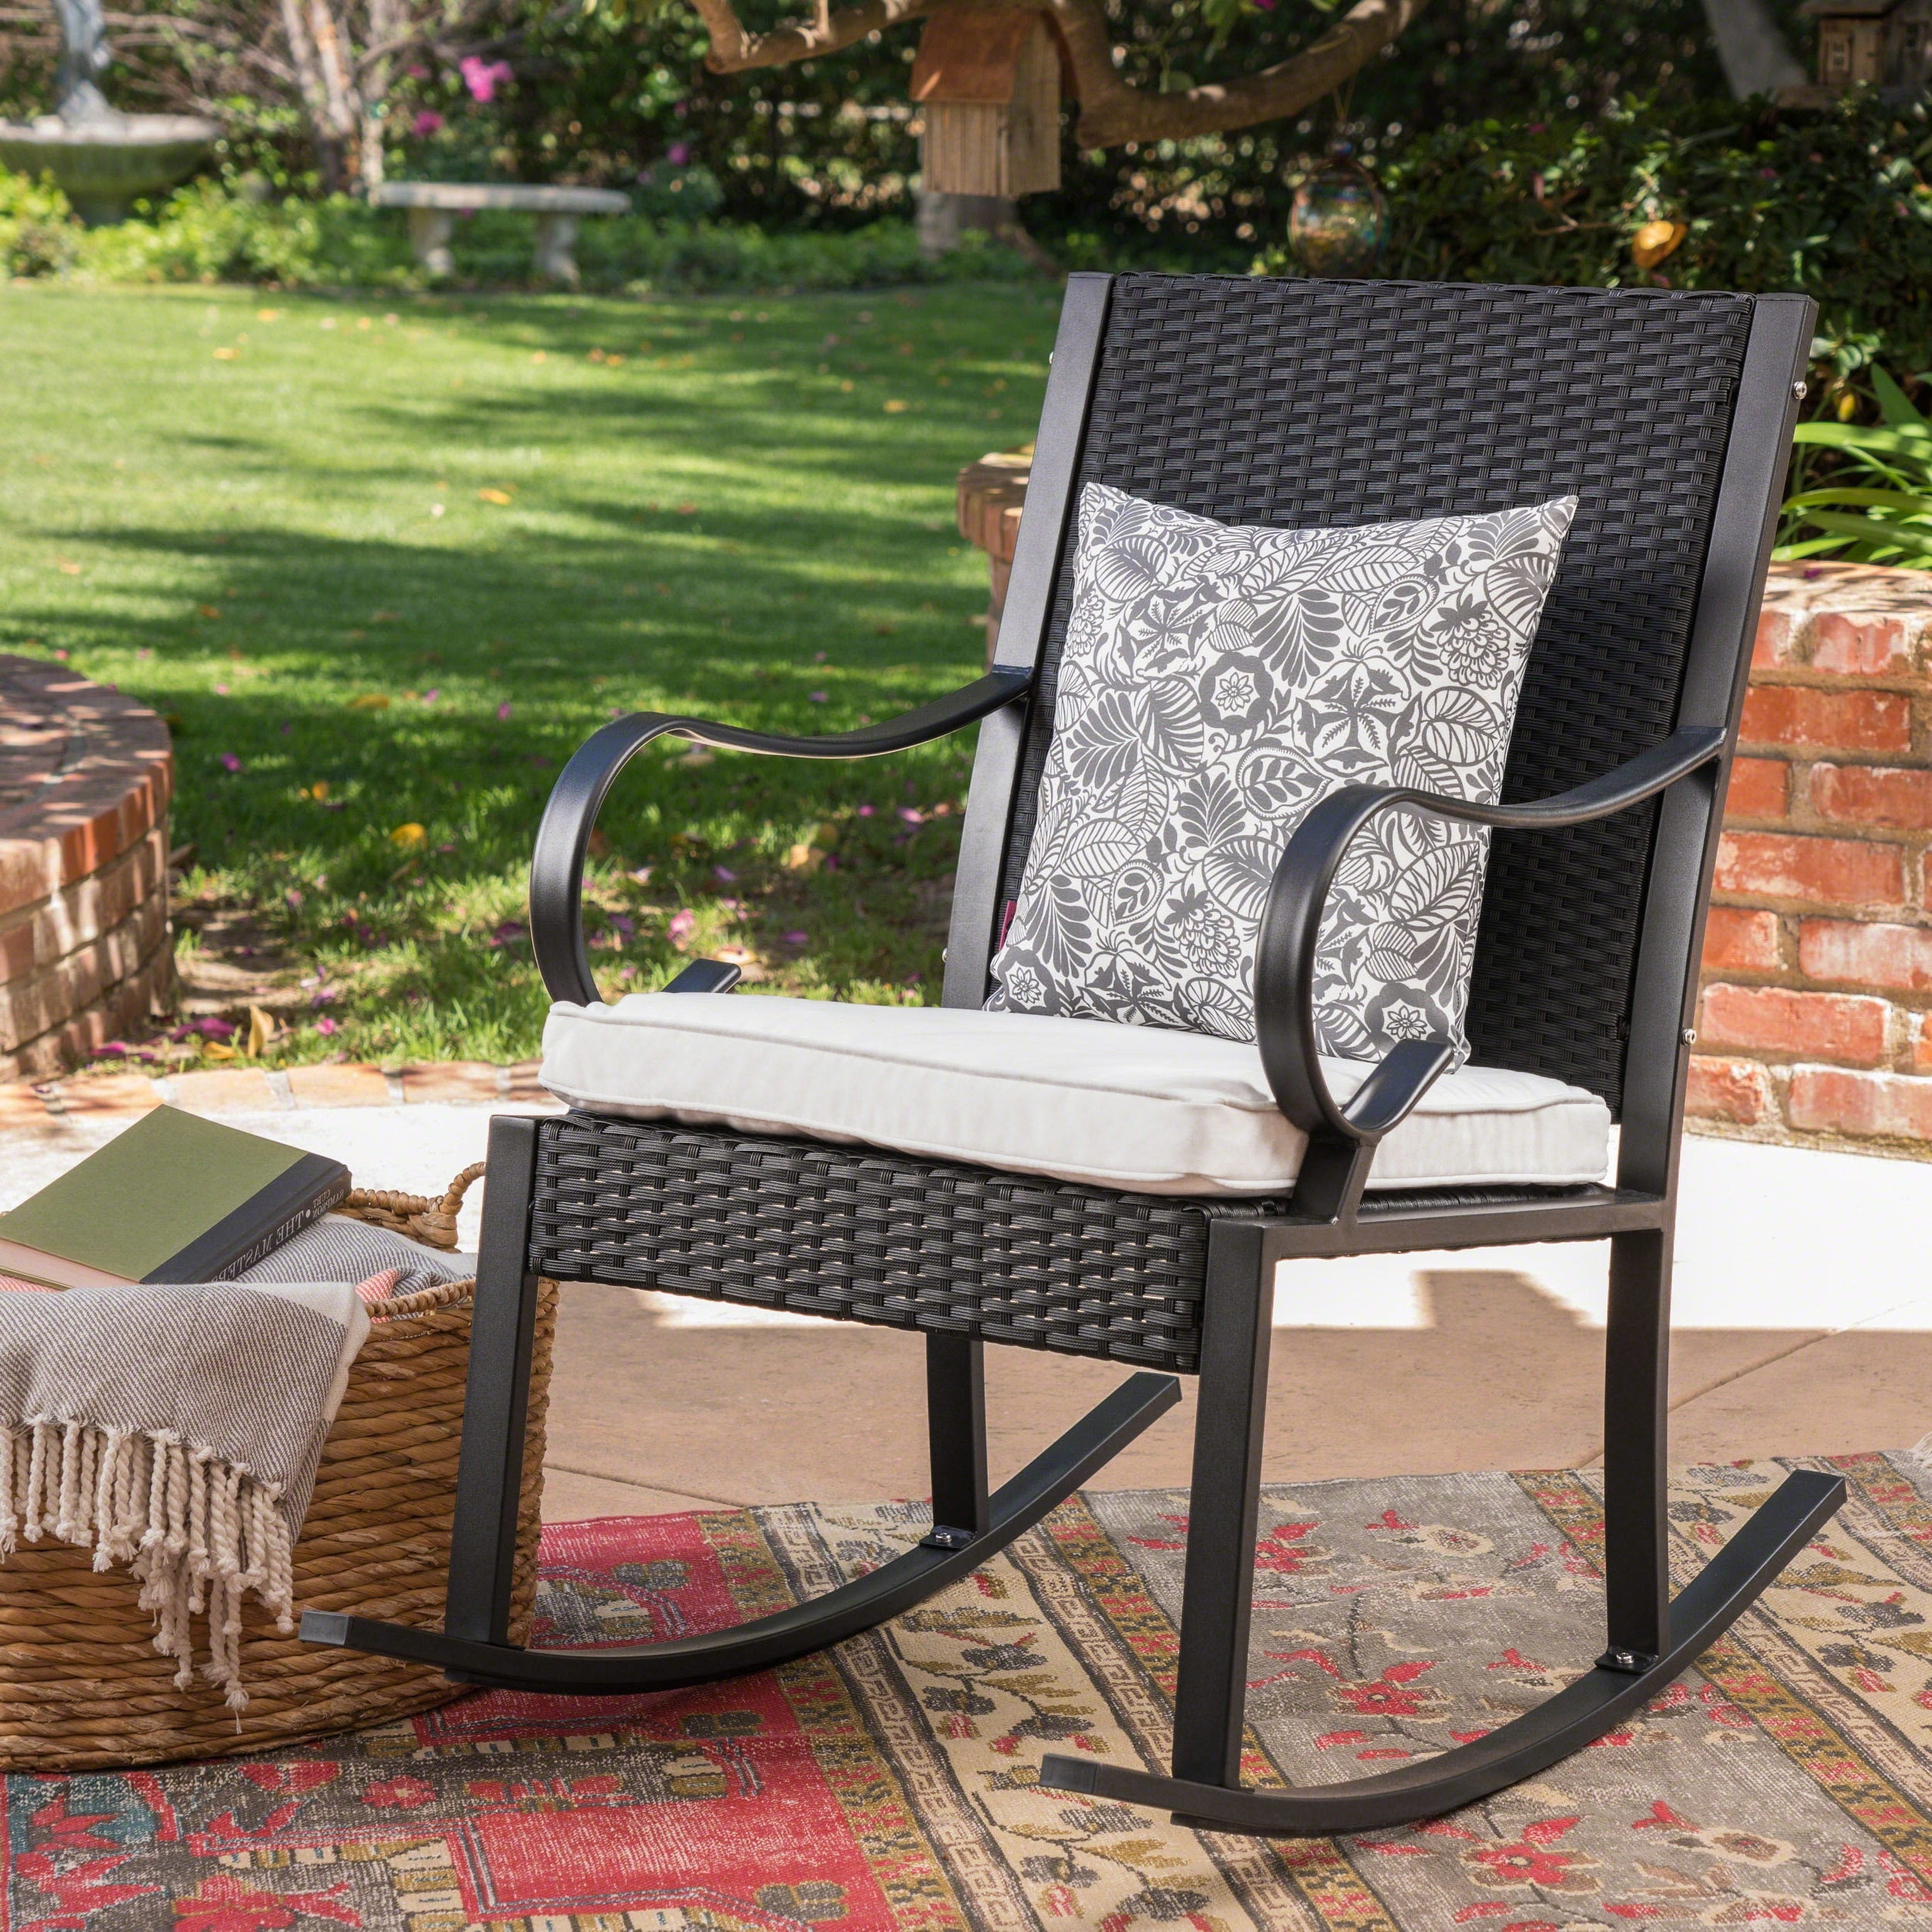 Well Known Wicker Rocking Chairs With Cushions With Regard To August Grove Kampmann Outdoor Wicker Rocking Chair With Cushions (View 7 of 15)